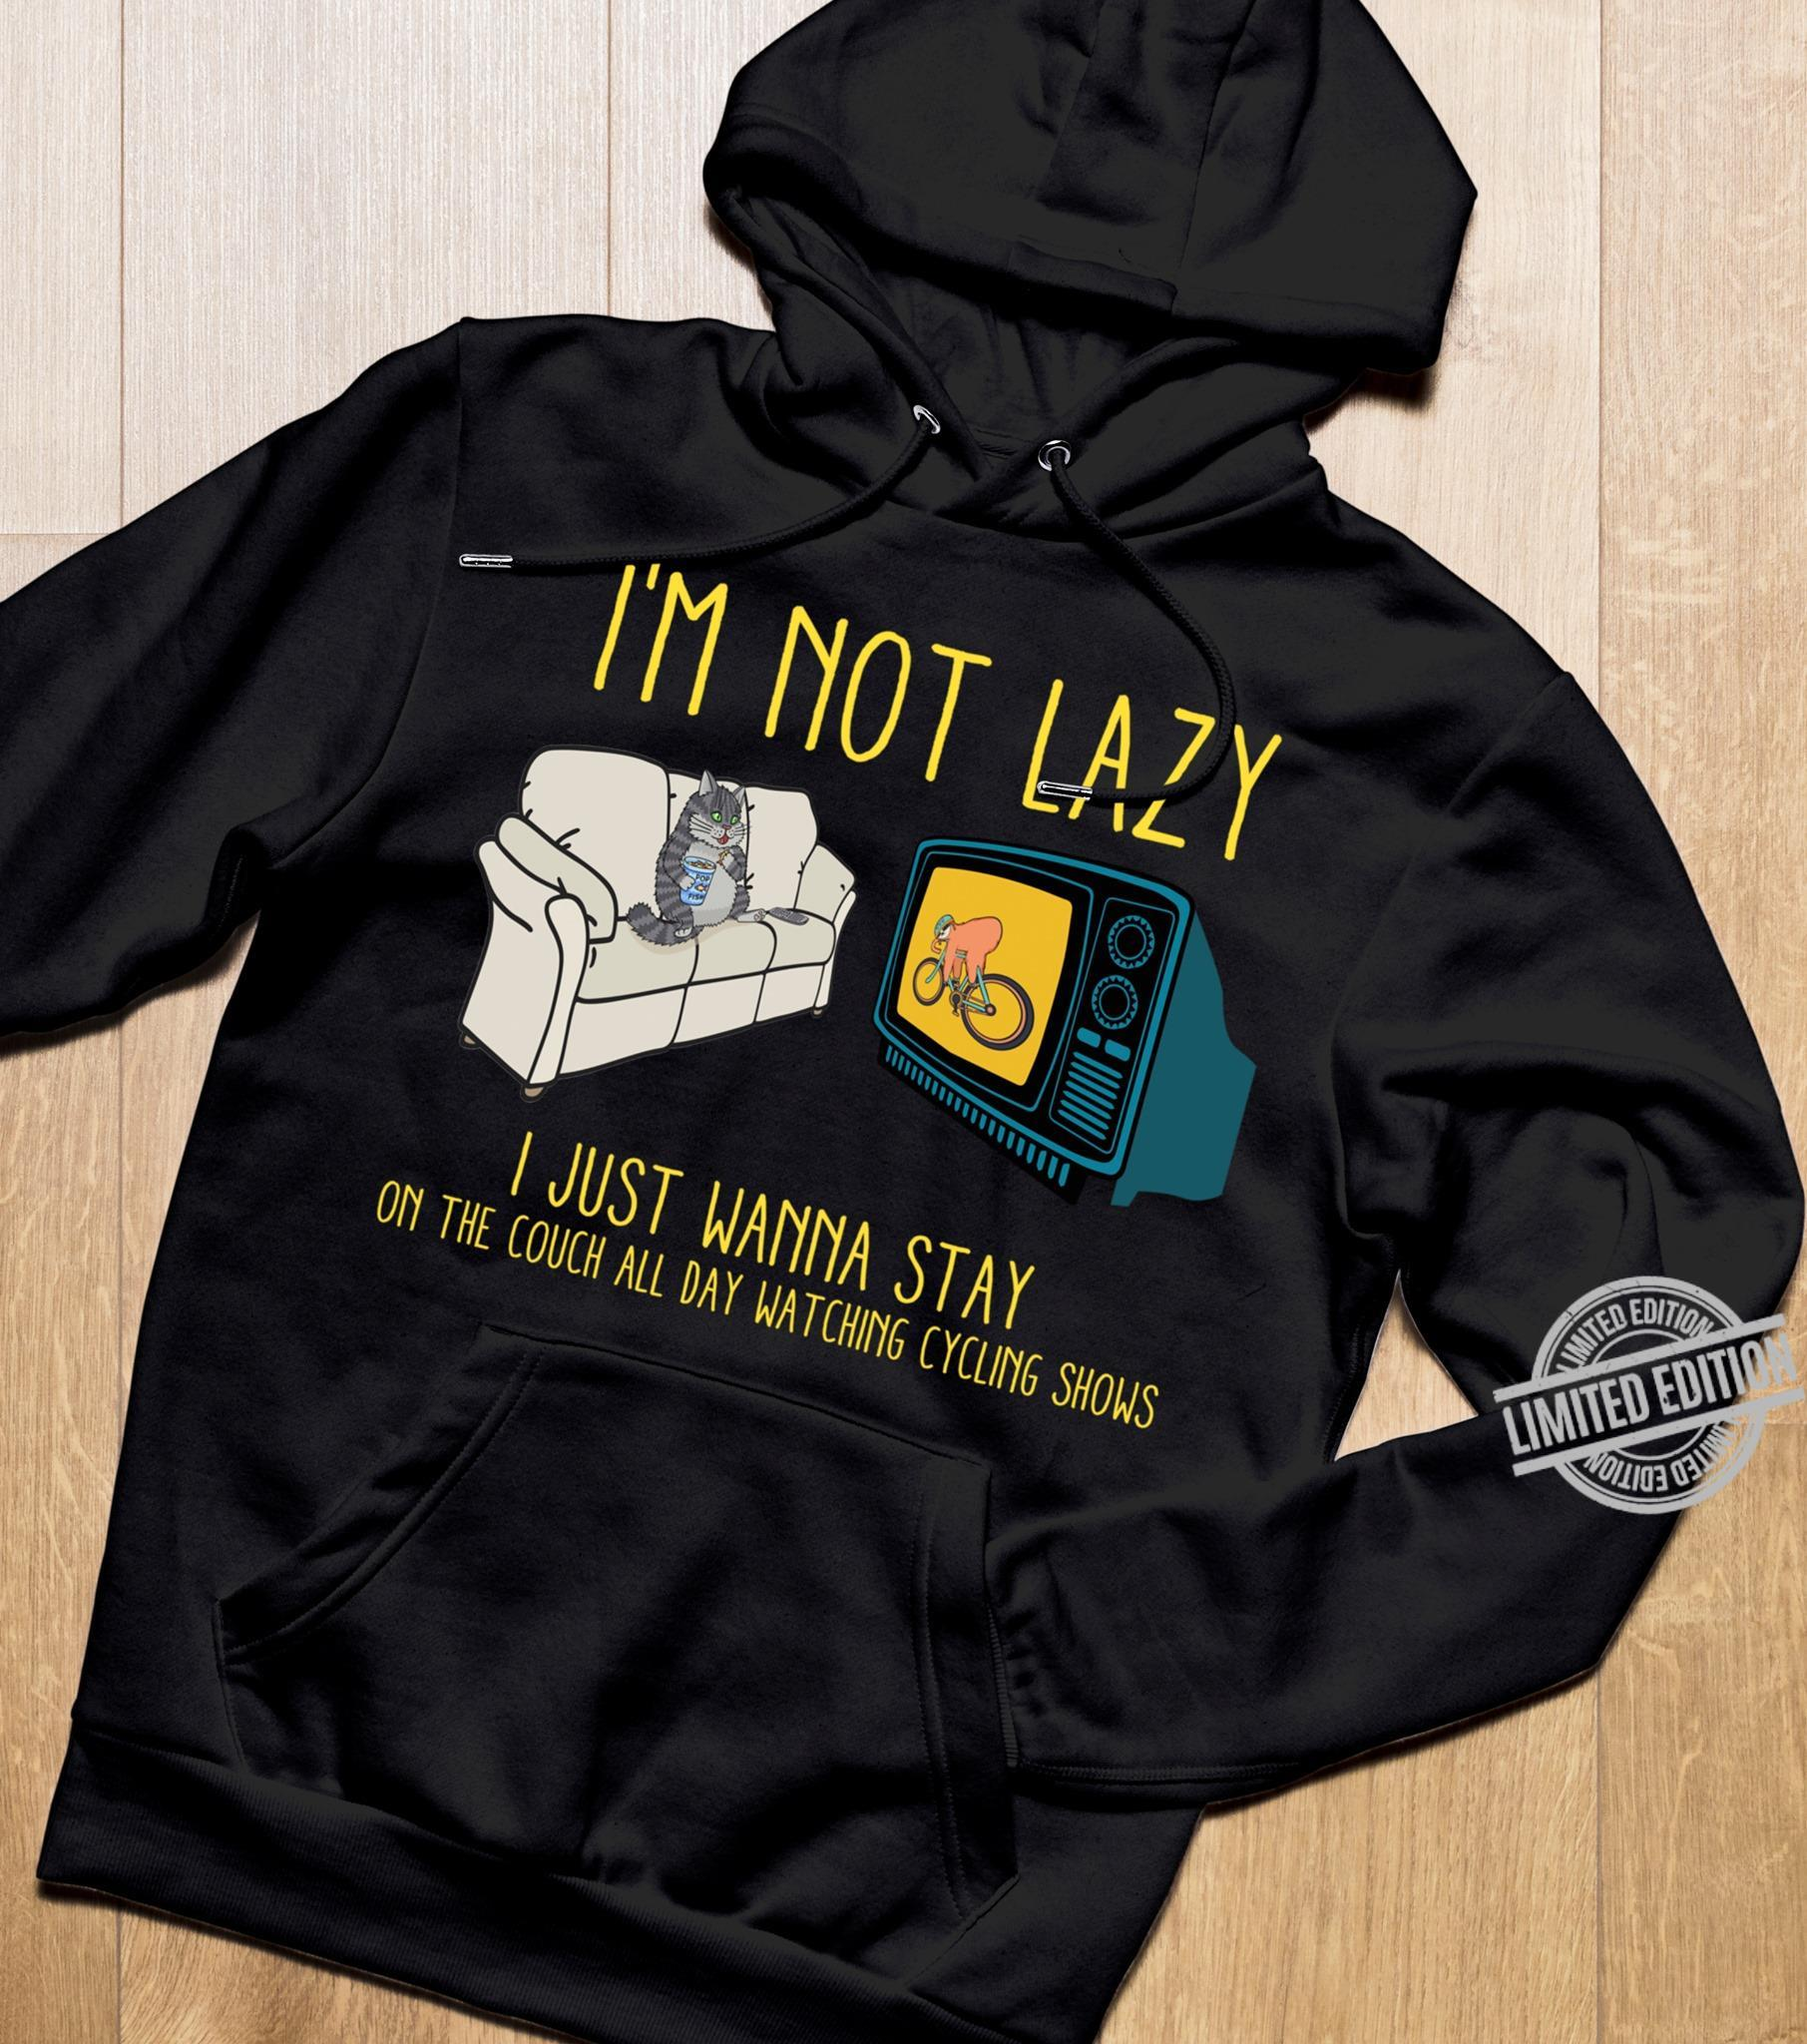 I'm Not Lazy I Just Wanna Stay On The Couch All Day Watching Cycling Shows Shirt